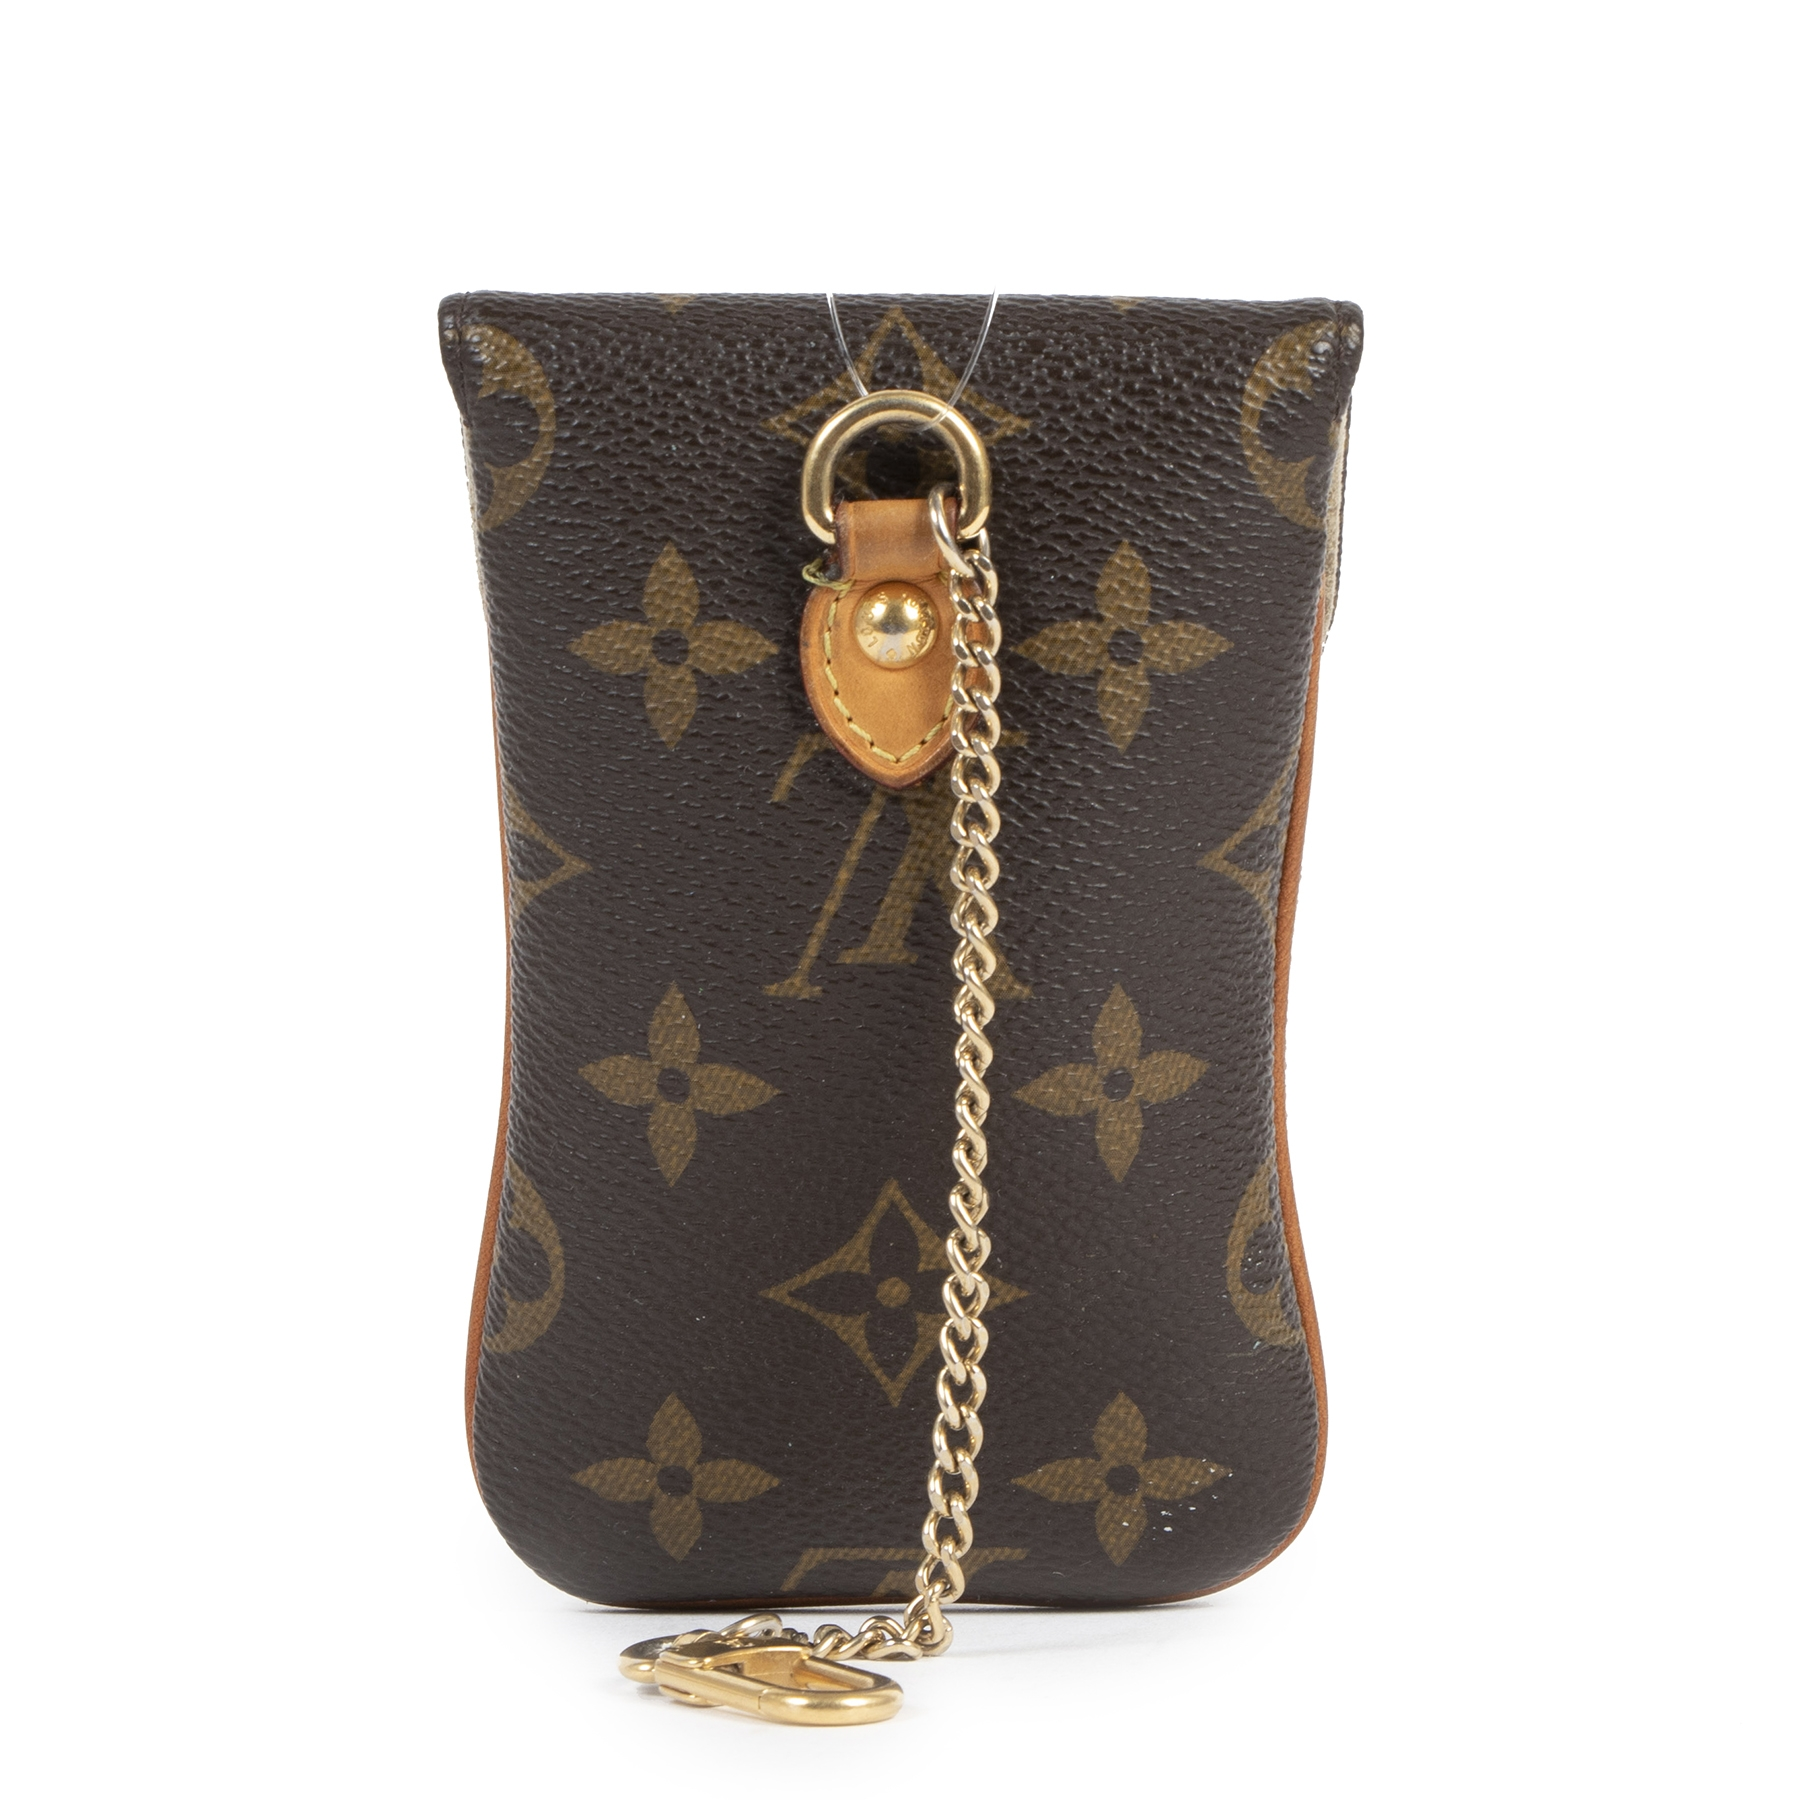 Authentic secondhand Louis Vuitton Monogram Phone Holder designer bags designer brands fashion luxury vintage webshop